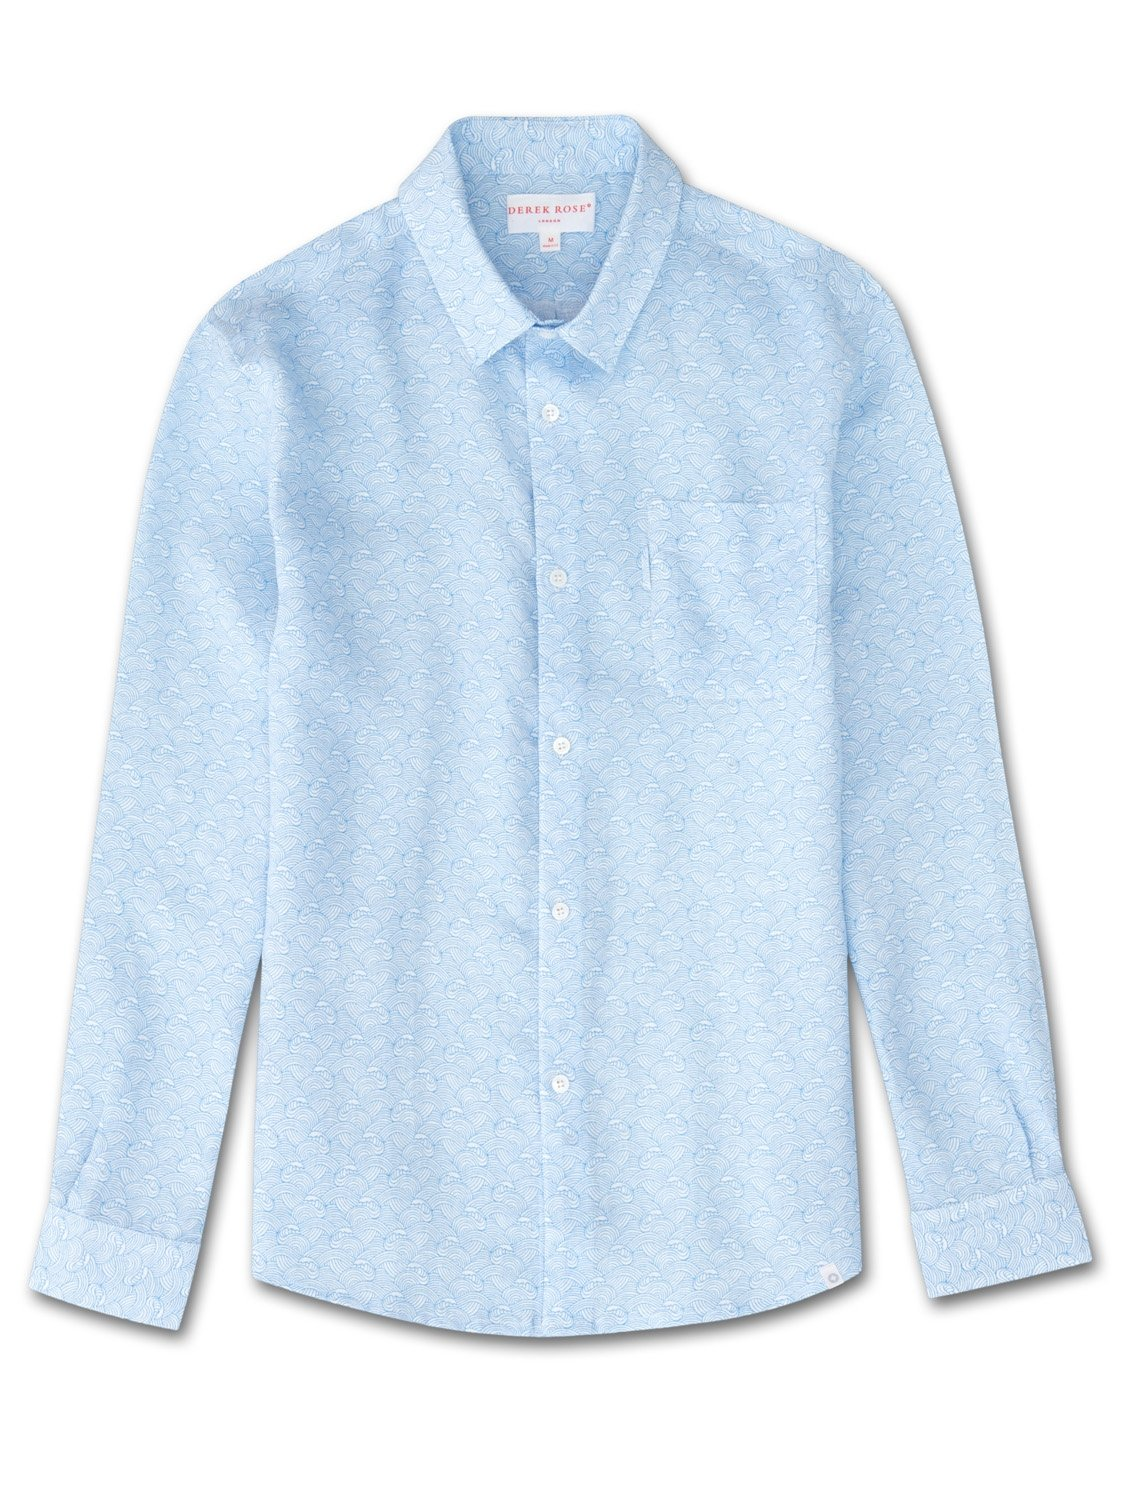 Men's Linen Shirt Milan 2 Linen Blue